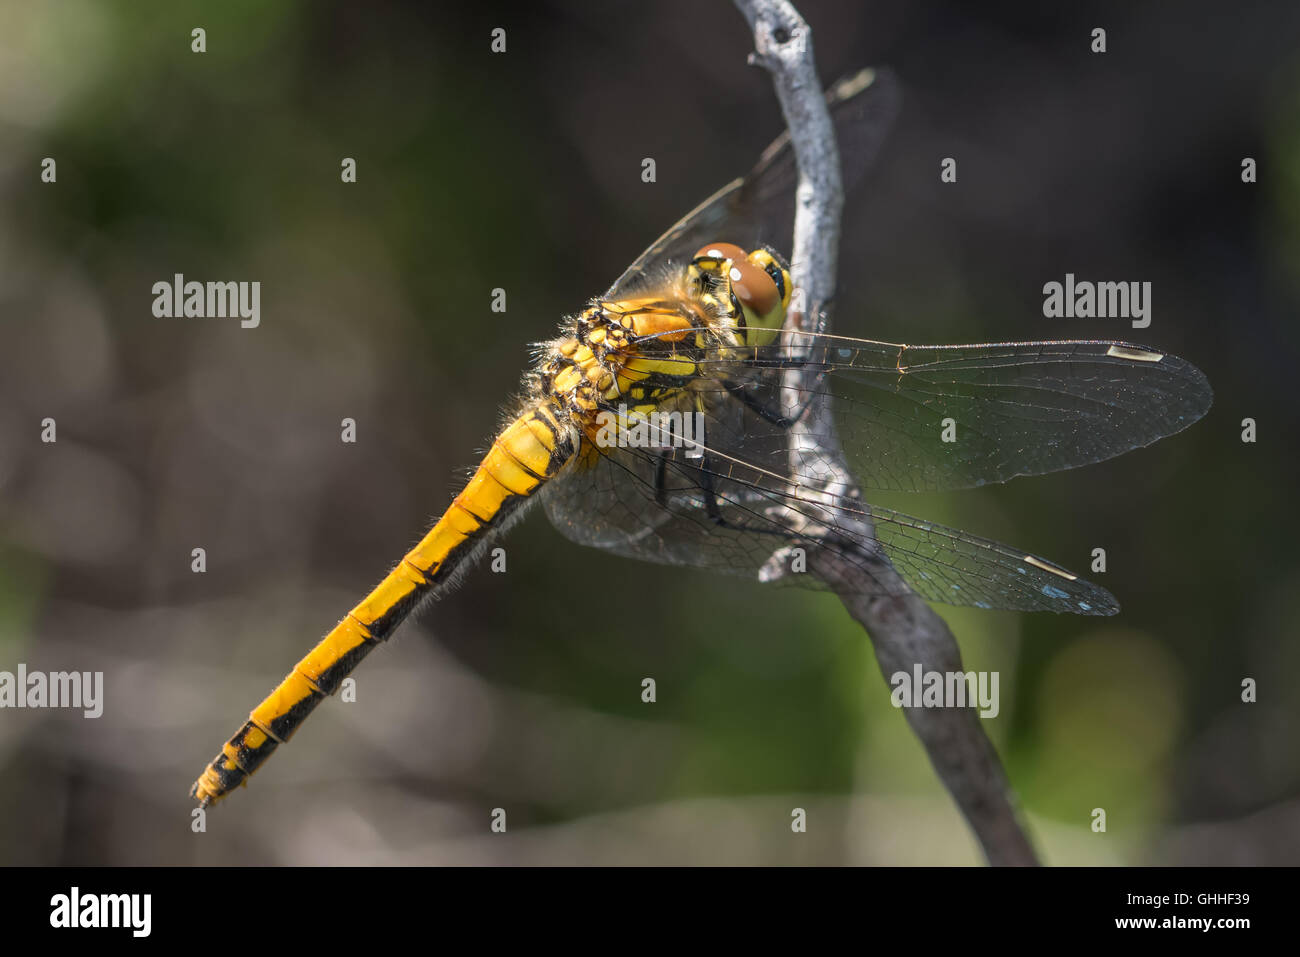 Female Black Darter dragonfly (Sympetrum danae) perched on a twig. Stock Photo